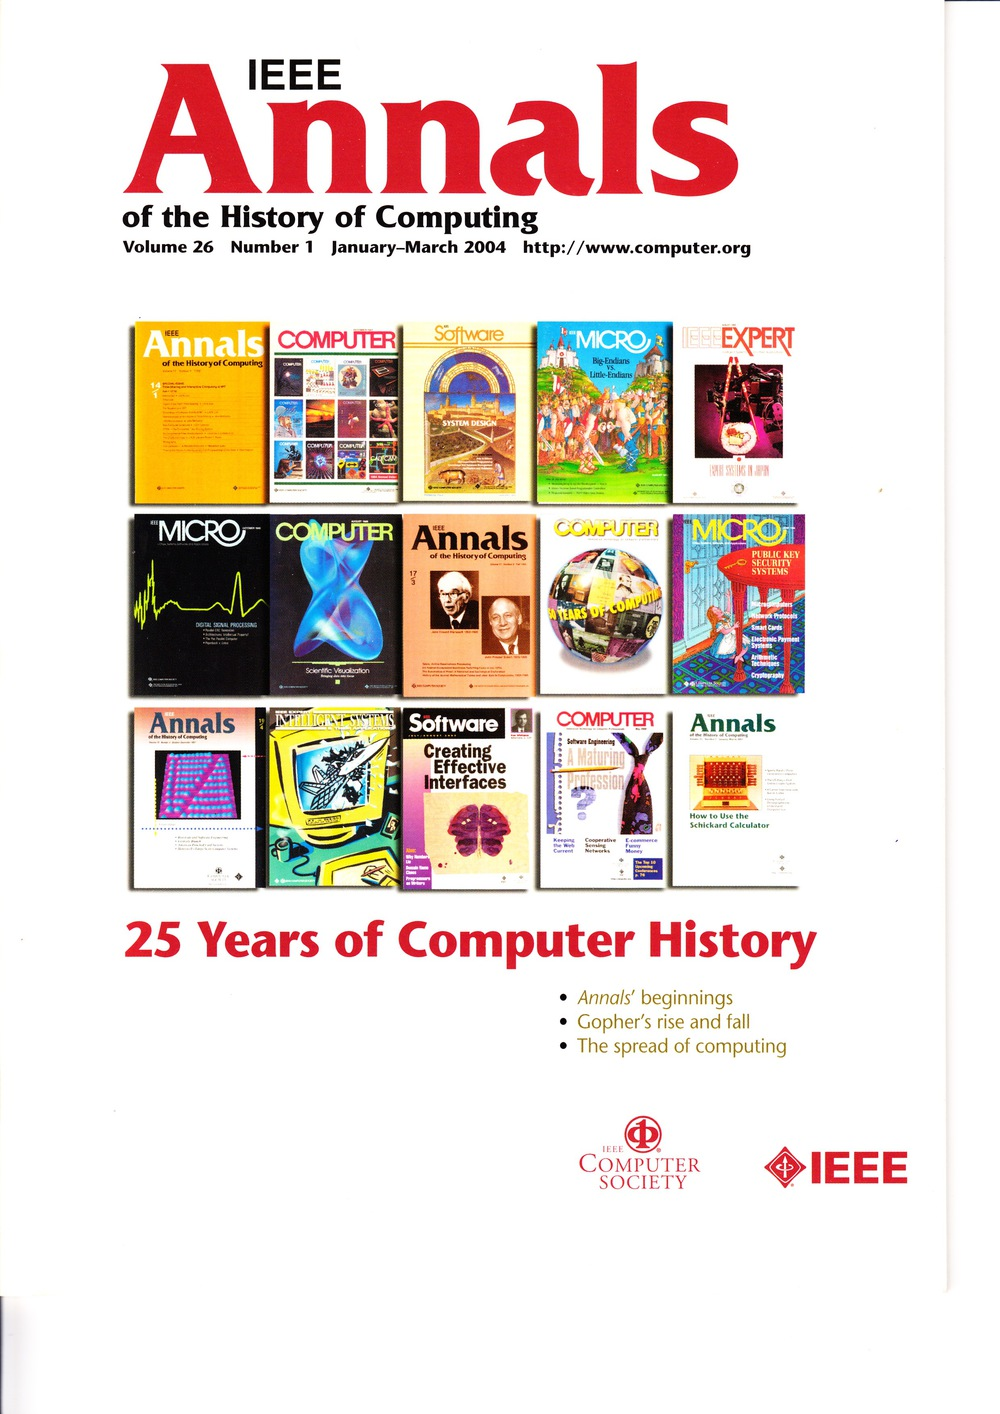 Scan of Document: IEEE Annals of the History of Computing - January-March 2004